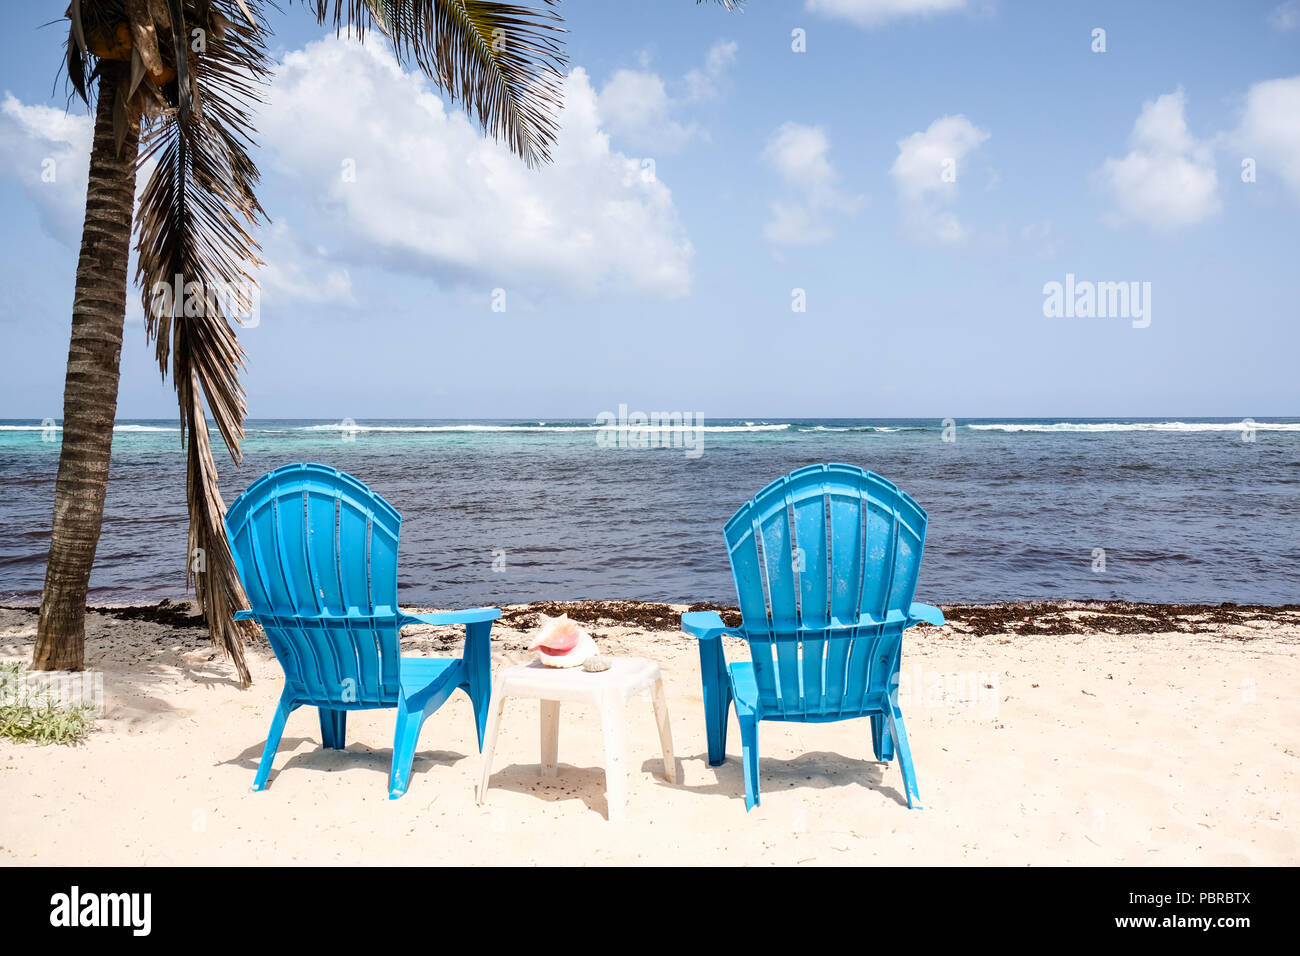 Two blue chair on beach facing masses of seaweeds washed up on beaches at Cayman Island - Stock Image